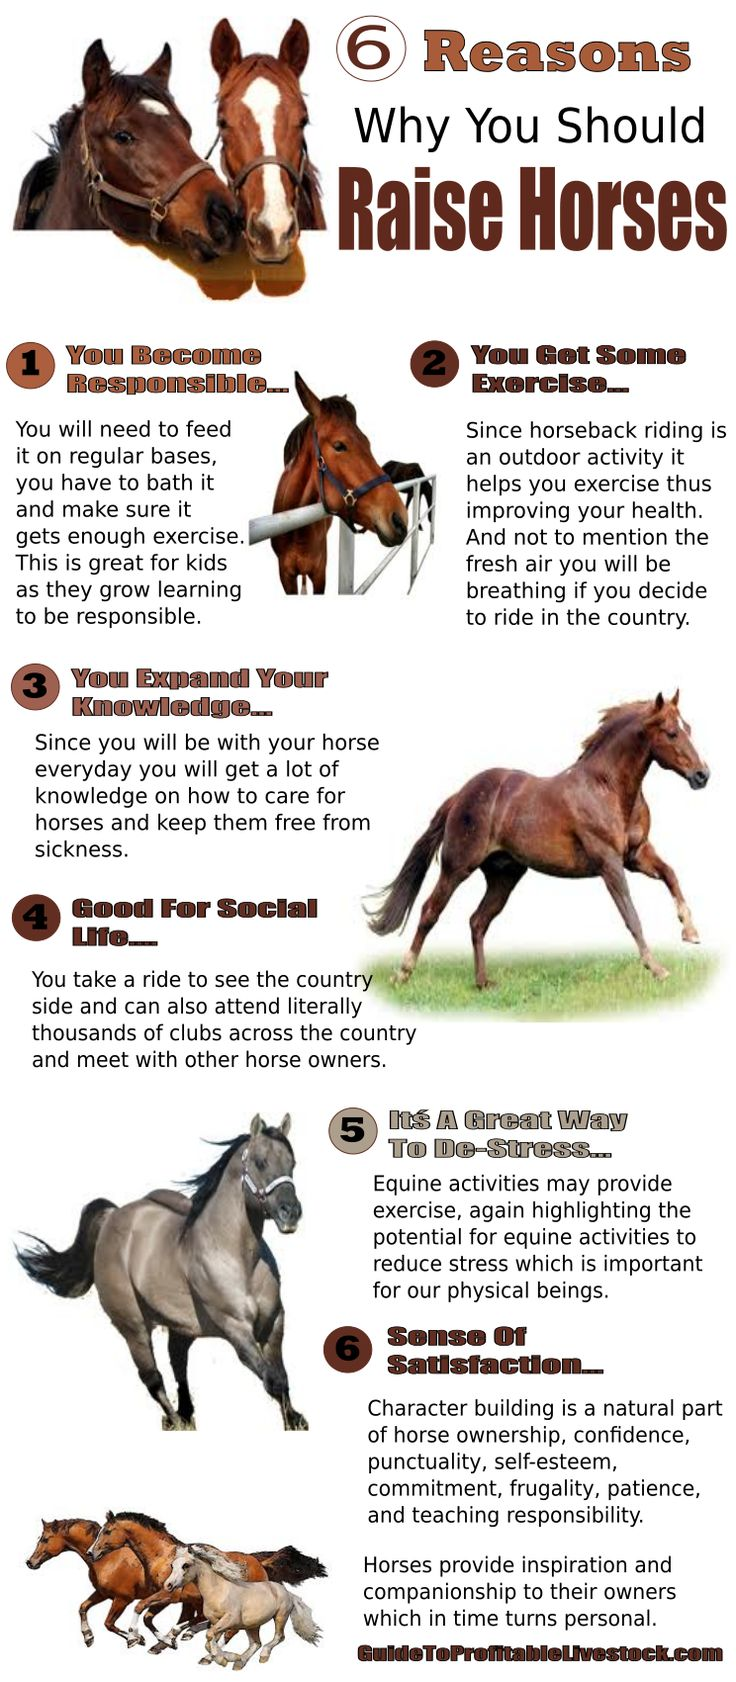 Six Reasons To Raise Horses | Livestock Farming For Beginners